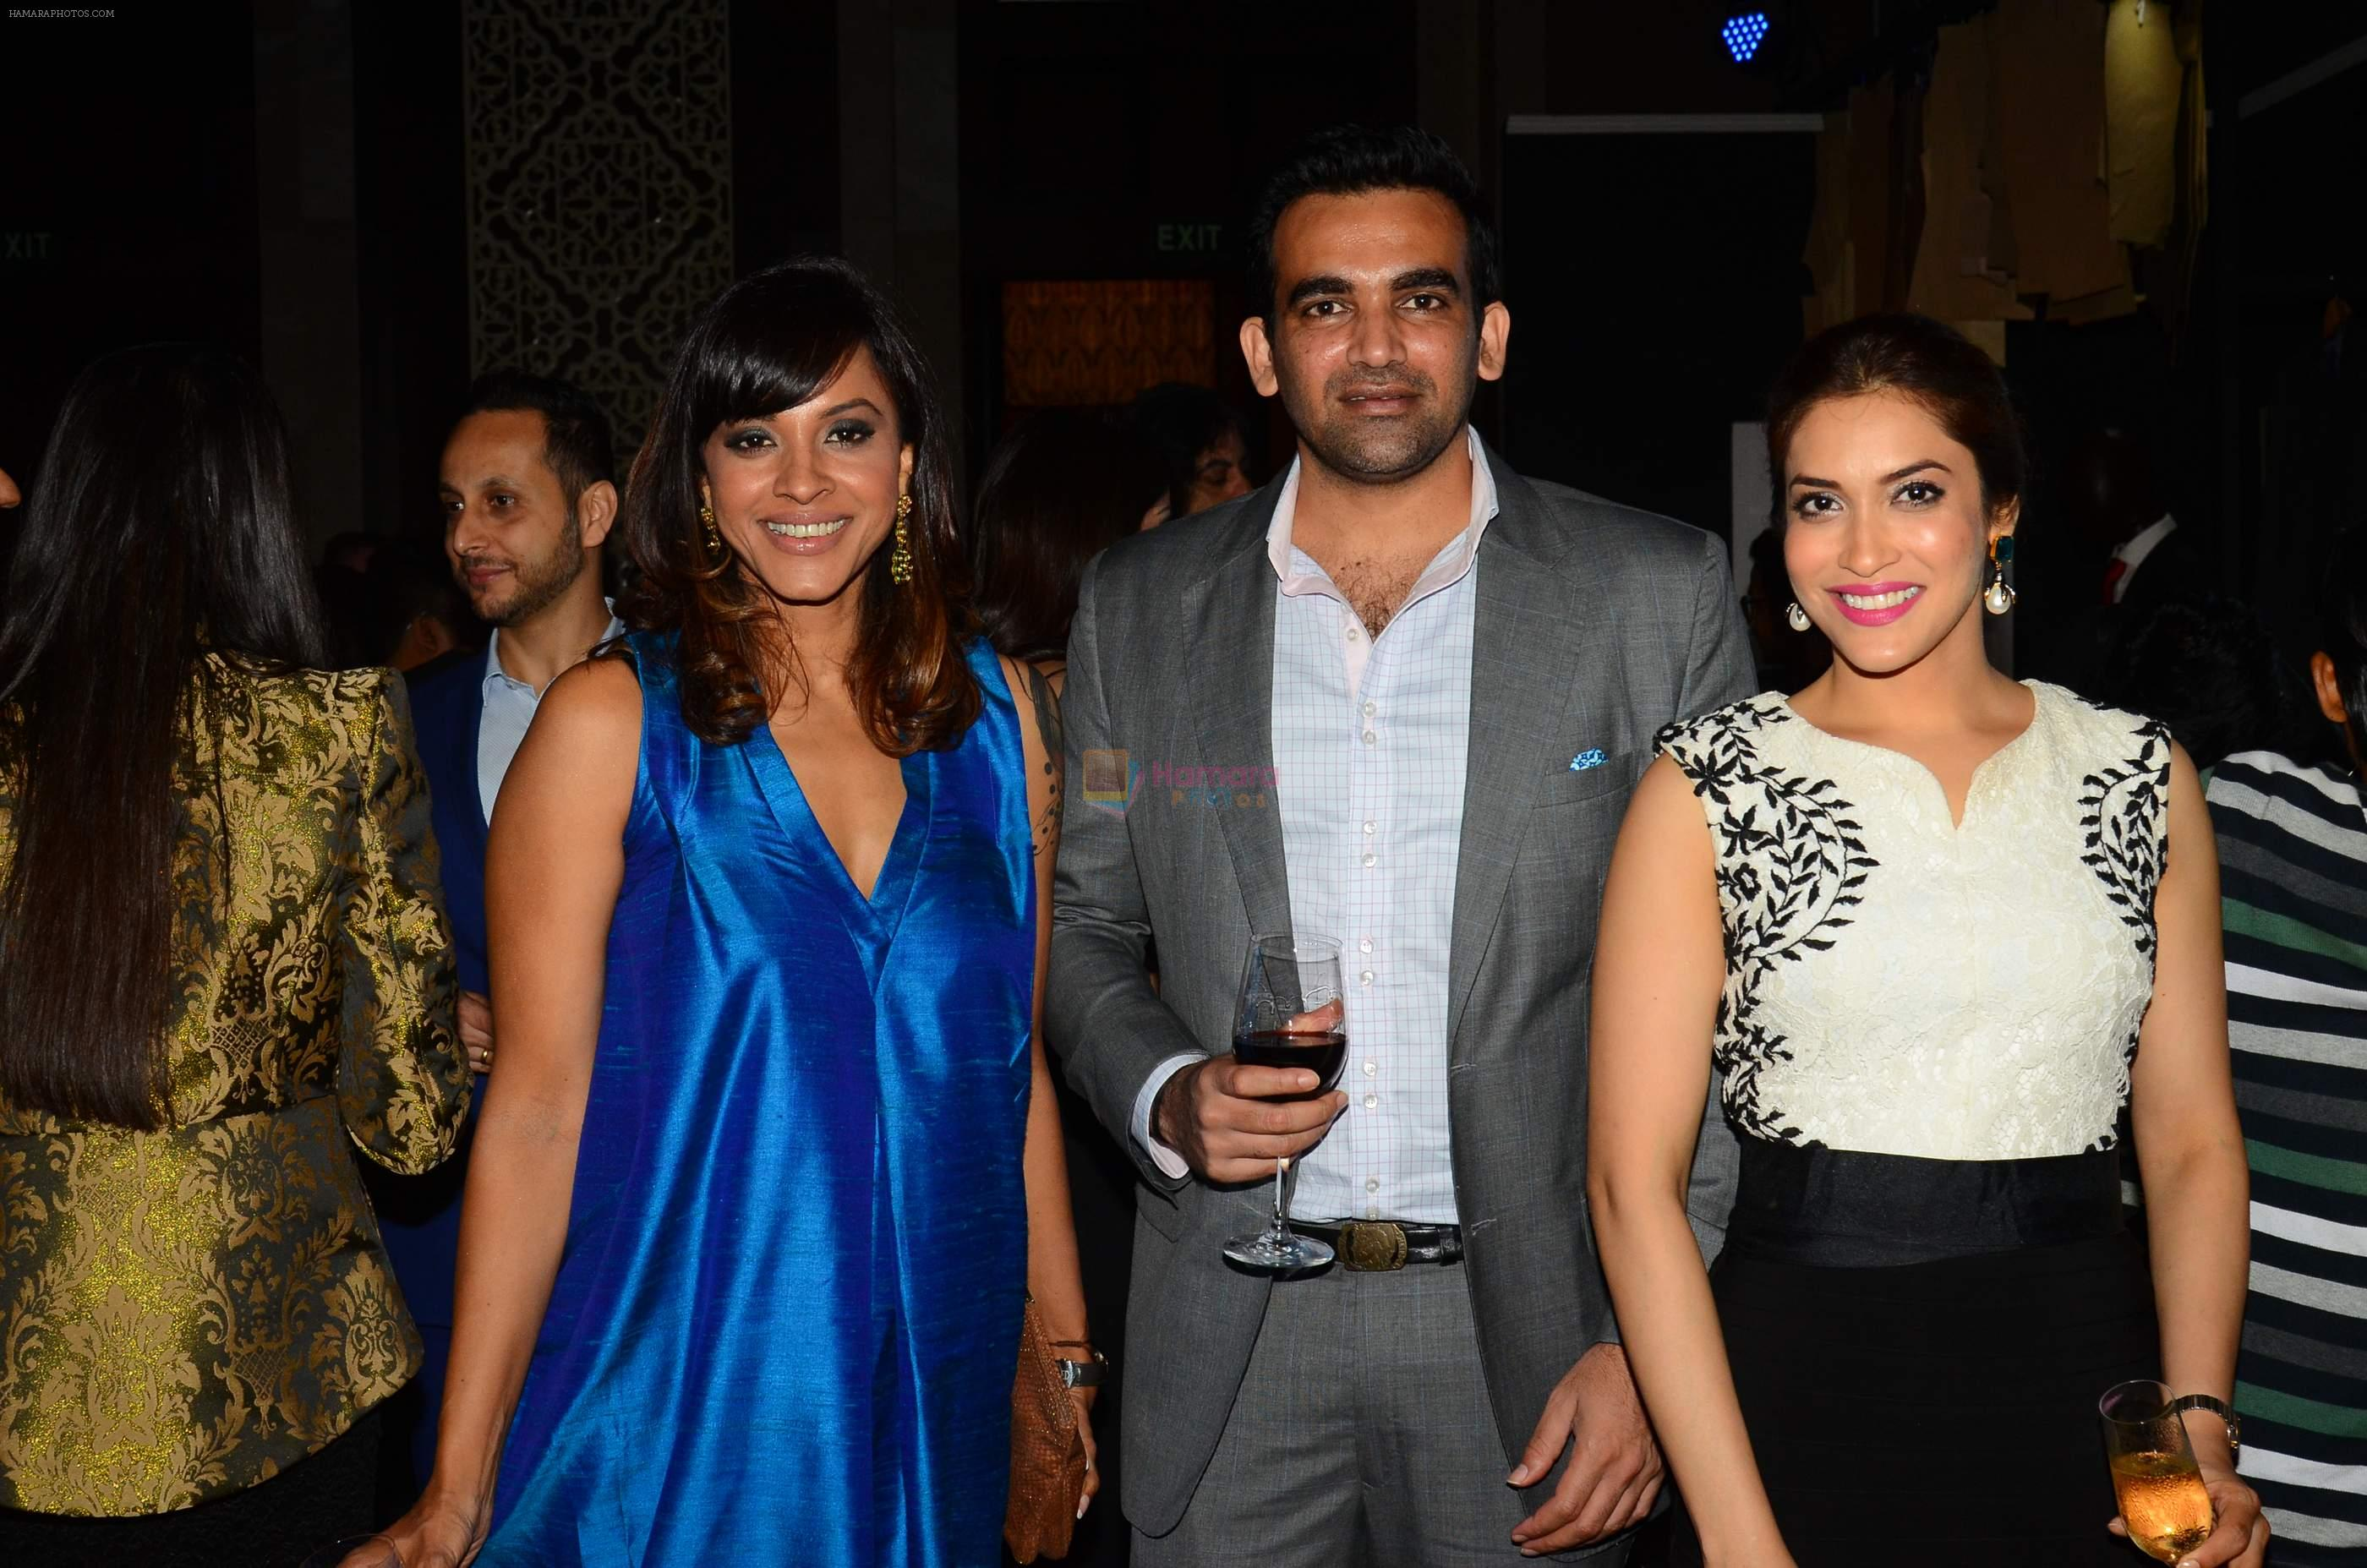 Manasi Scott, Zaheer Khan, Rashmi Nigam at Chivas 18 Ashish Soni event at St Regis on 22nd Sept 2015